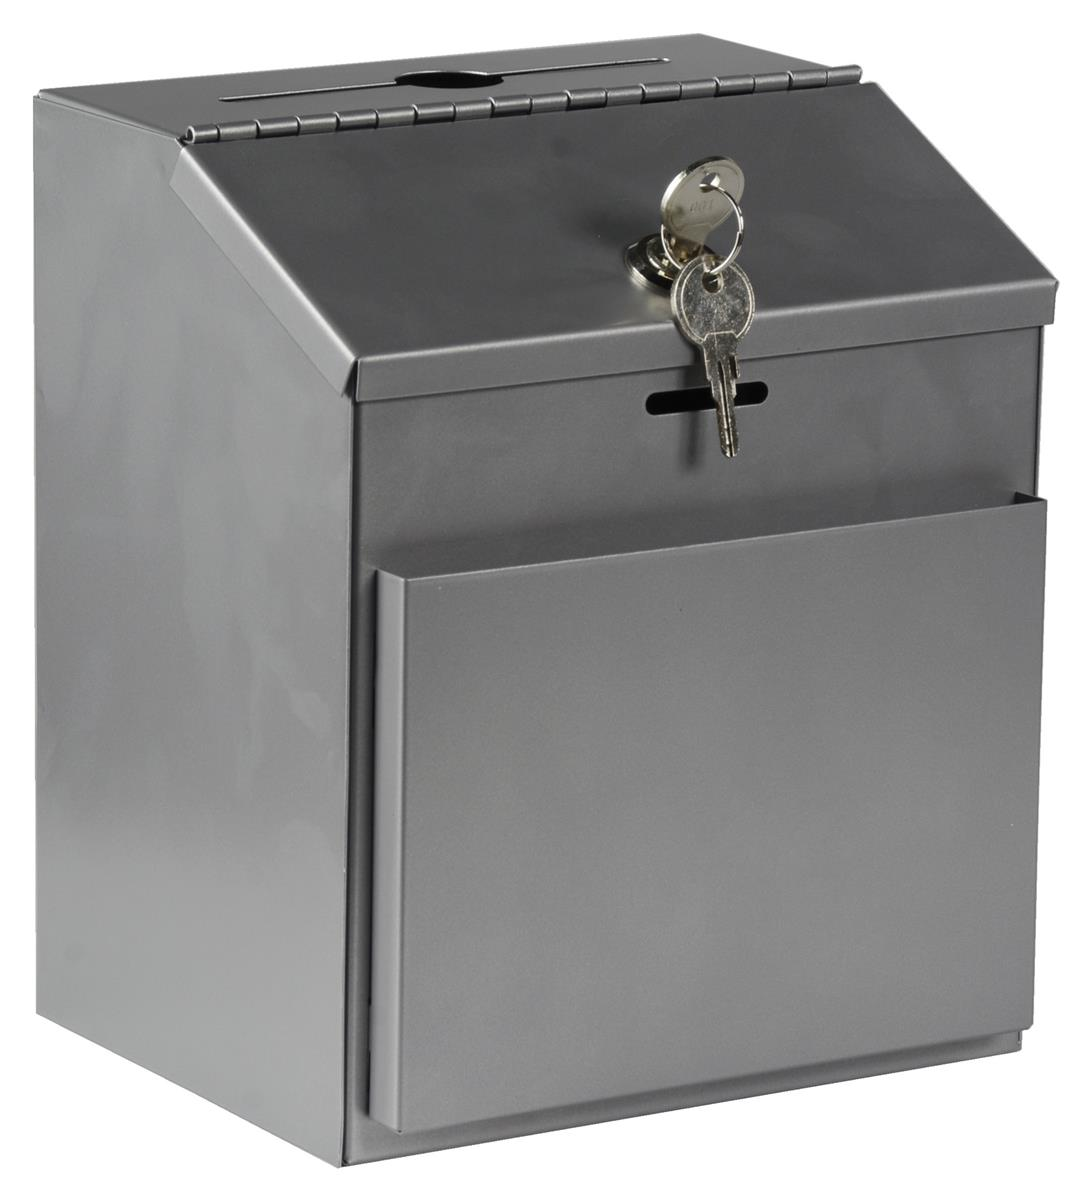 Saw Wall Mount Box : These metal donation boxes feature a hinged locking lid